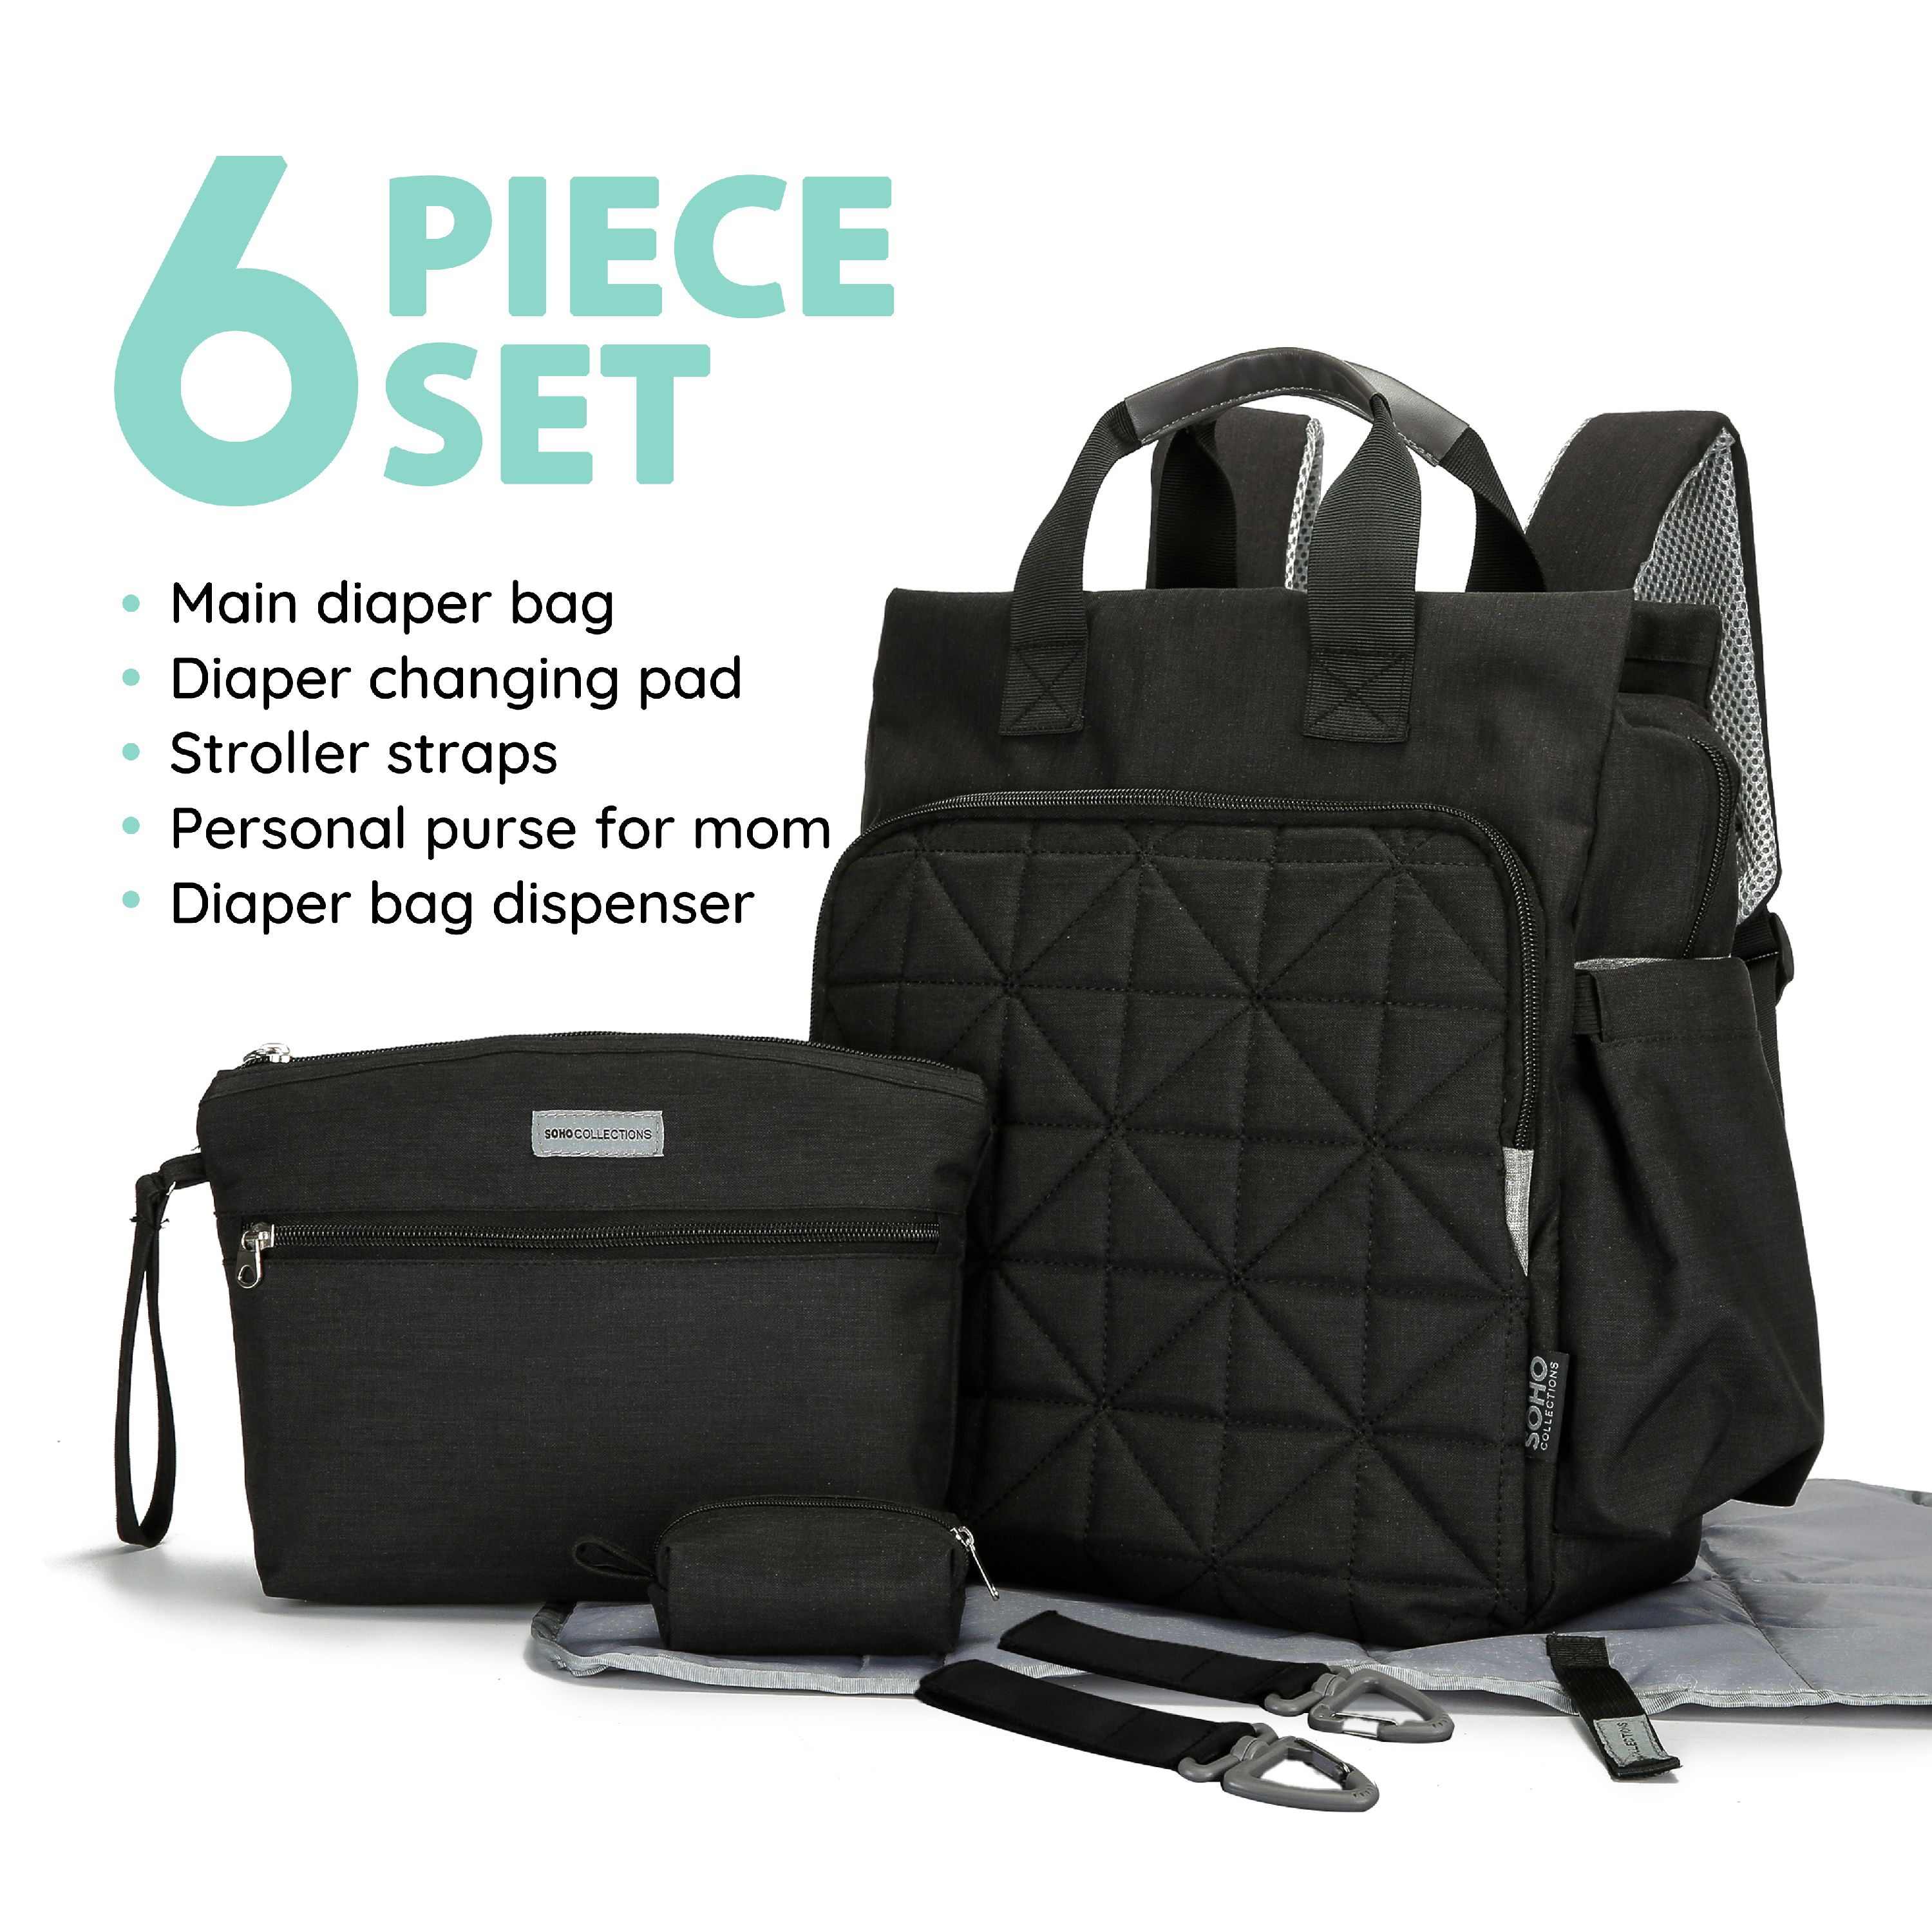 SoHo diaper bag backpack Kenneth 6 pcs nappy tote stylish bag for baby mom dad insulated unisex multifuncation large capacity durable includes changing pad stroller straps Black